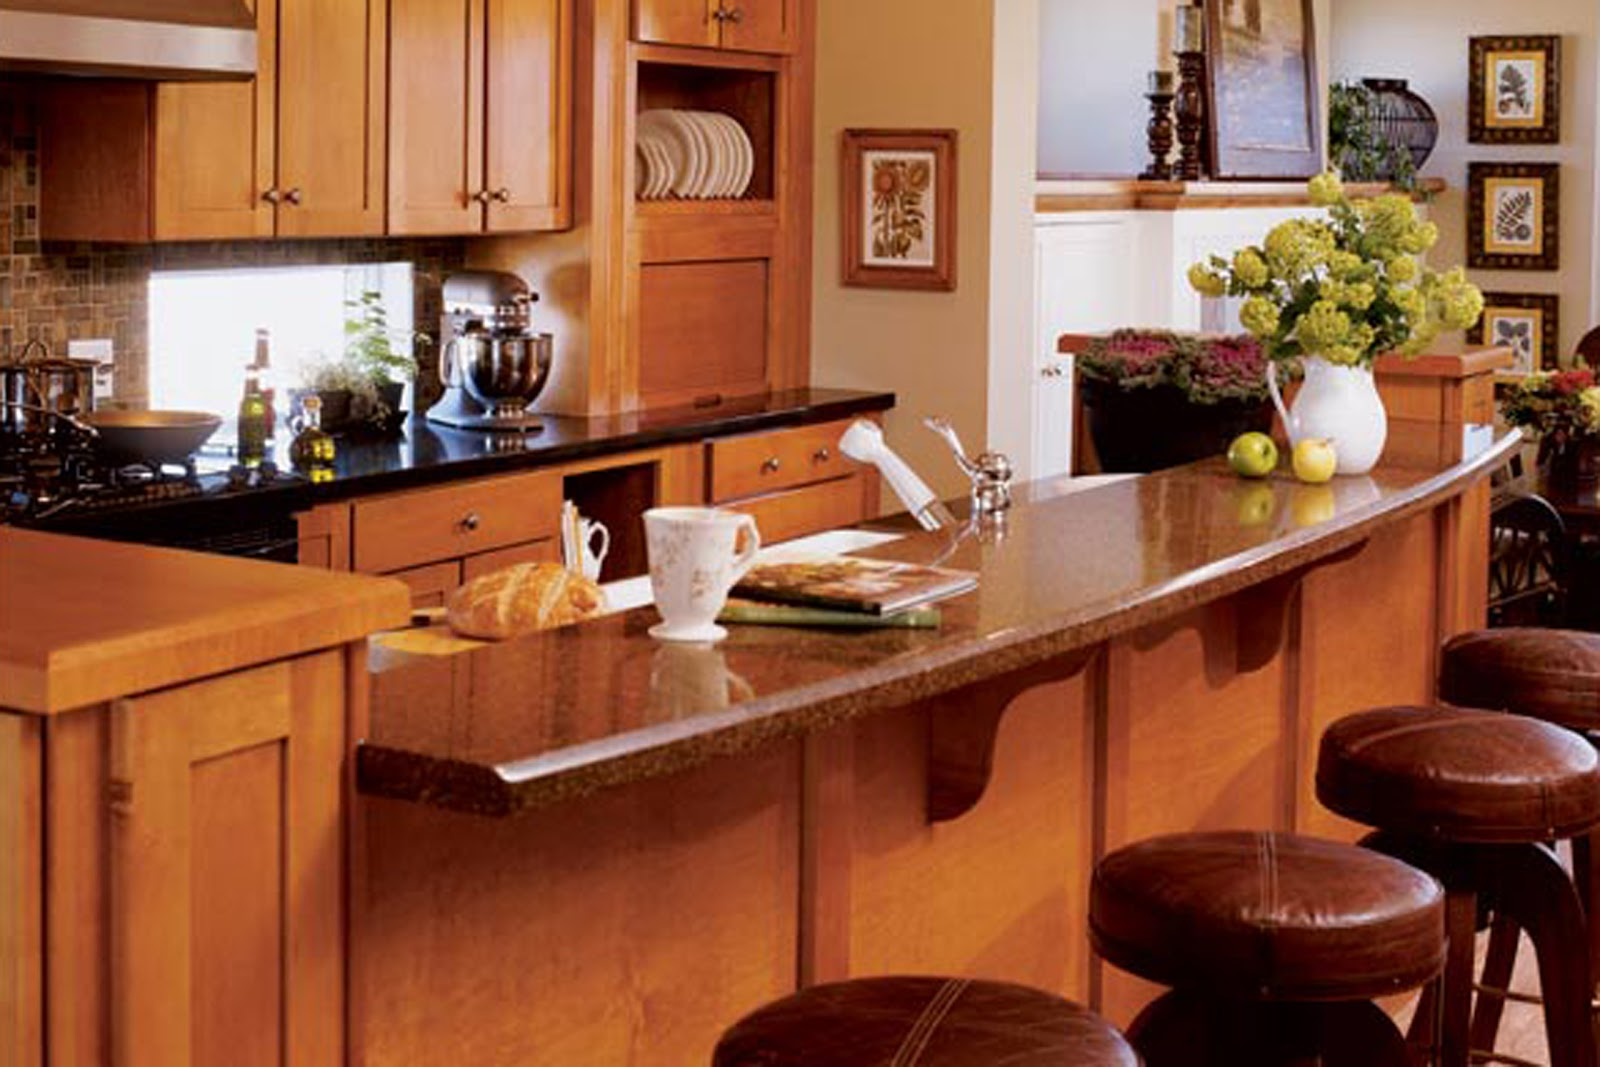 Simply elegant home designs blog february 2011 for Small kitchen layout with island